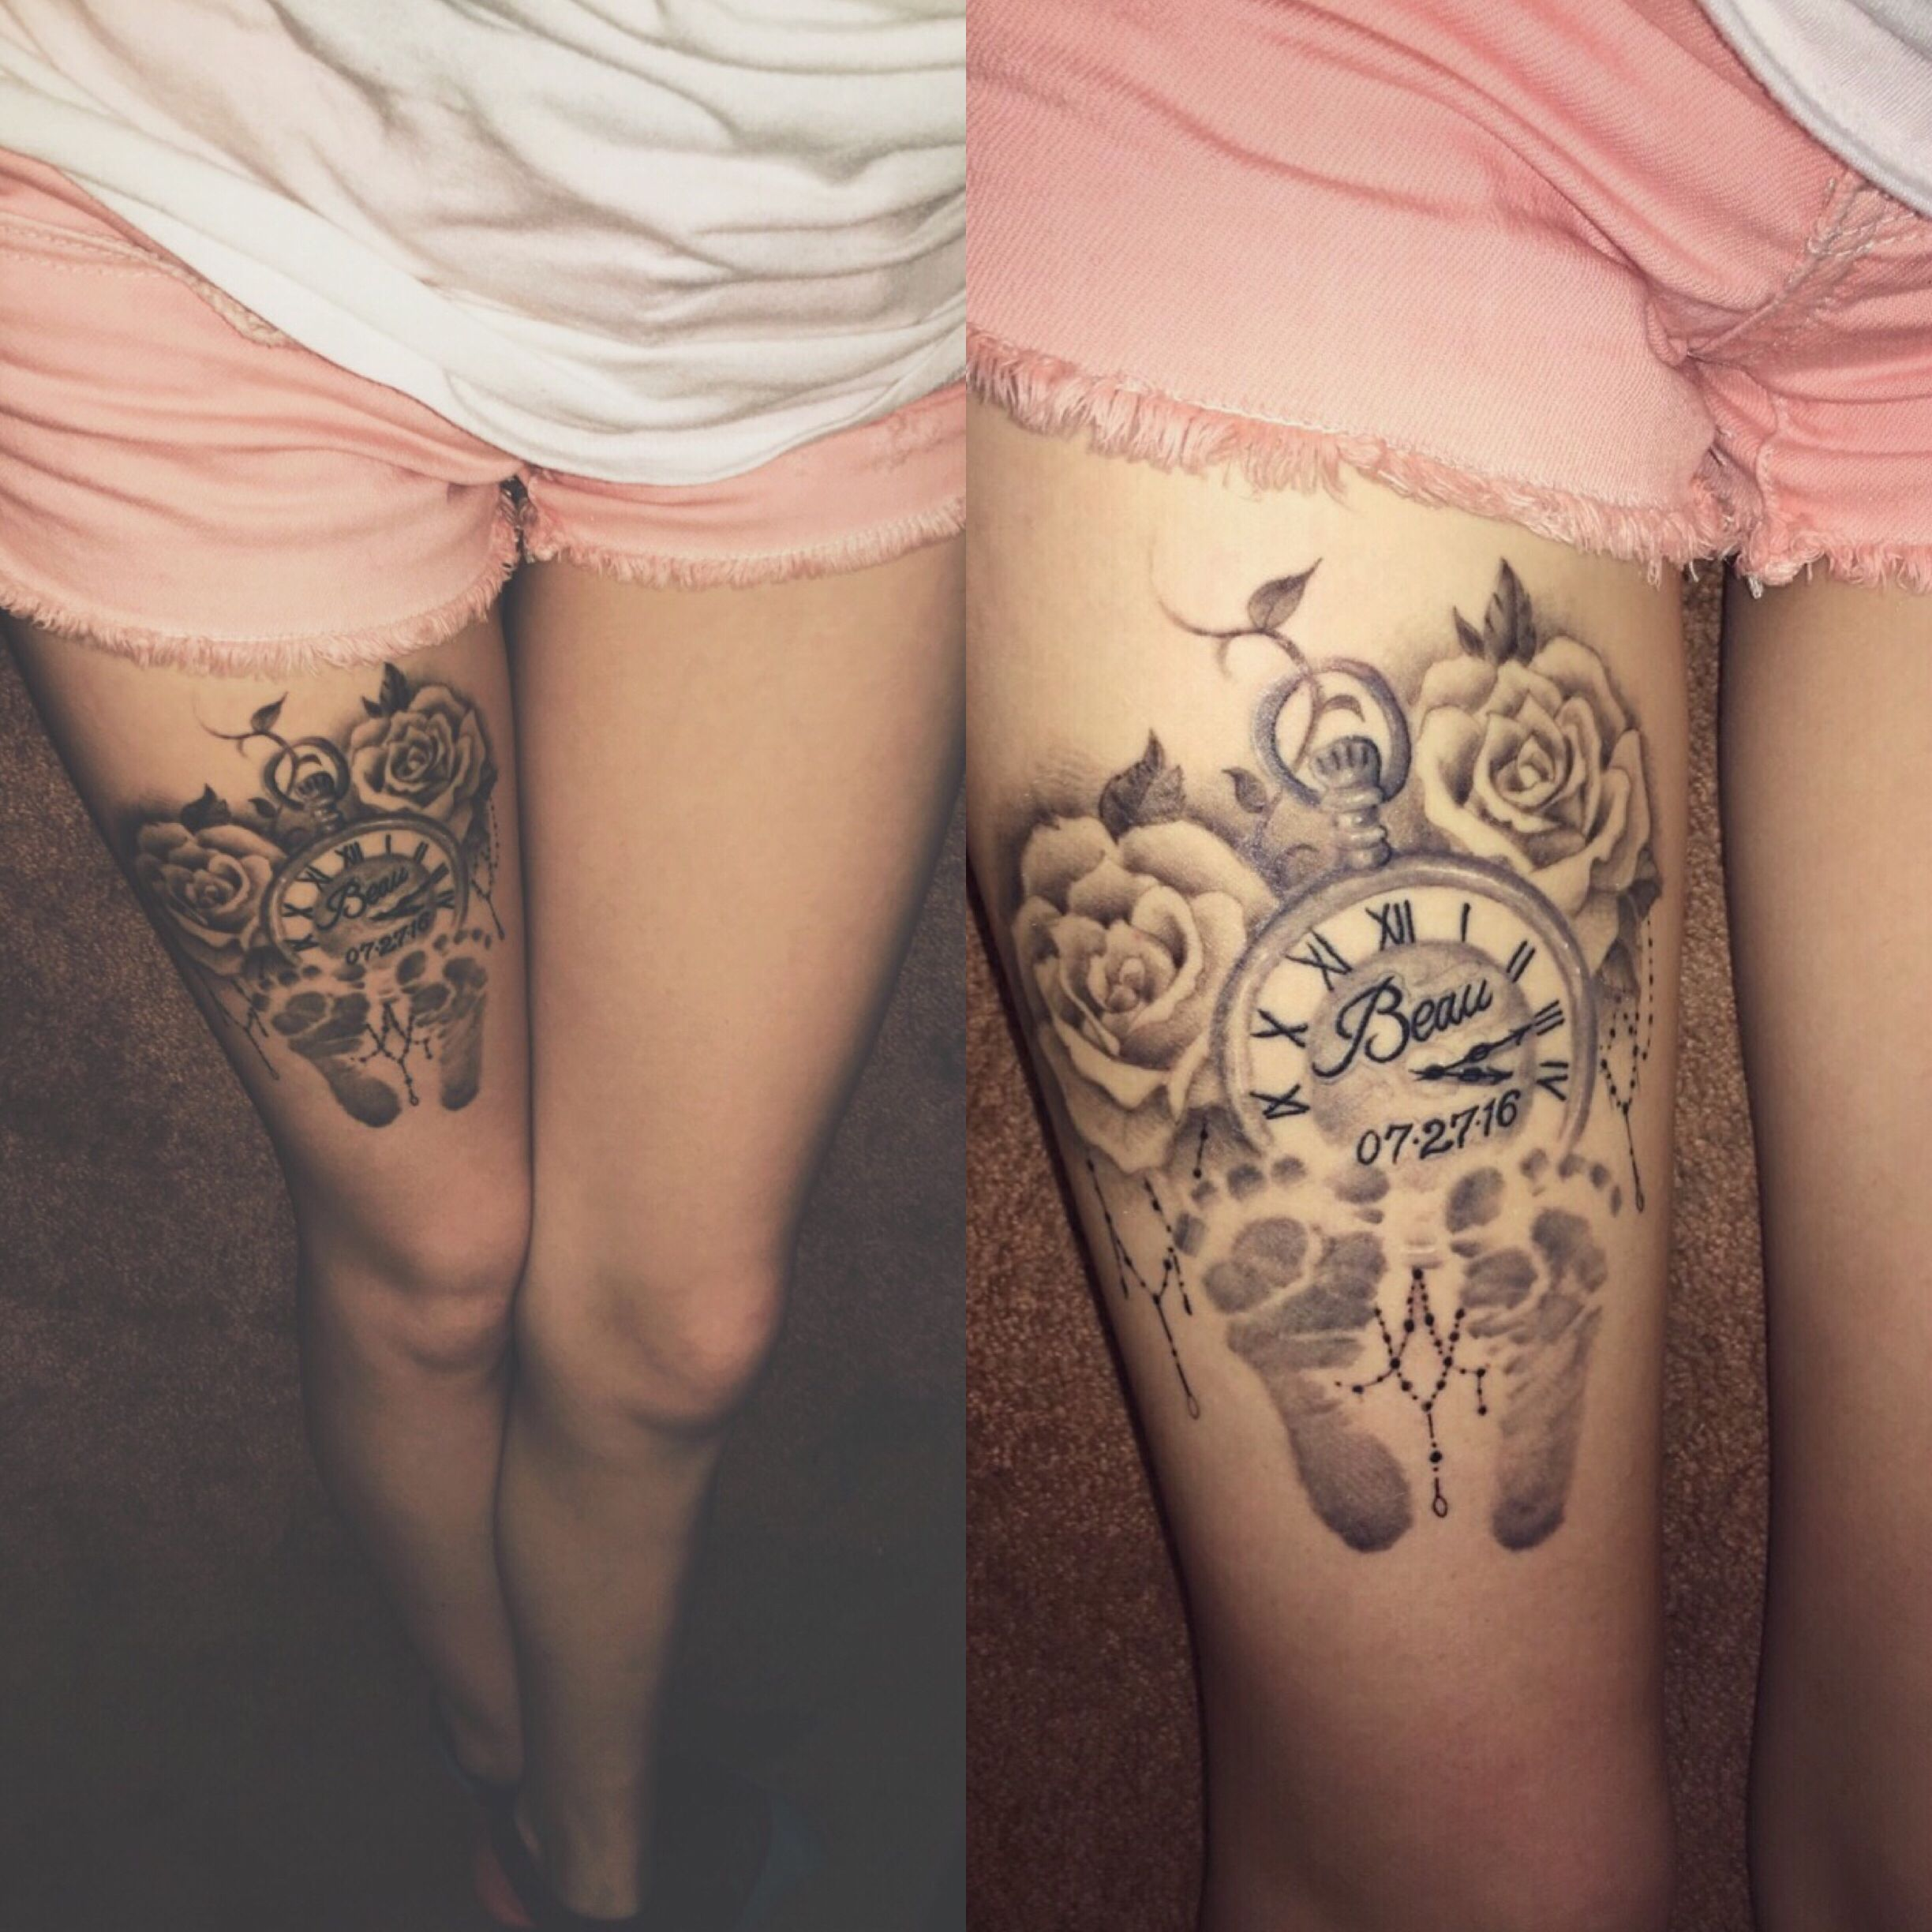 Roses, Pocket-watch And Baby Footprints Tattoo